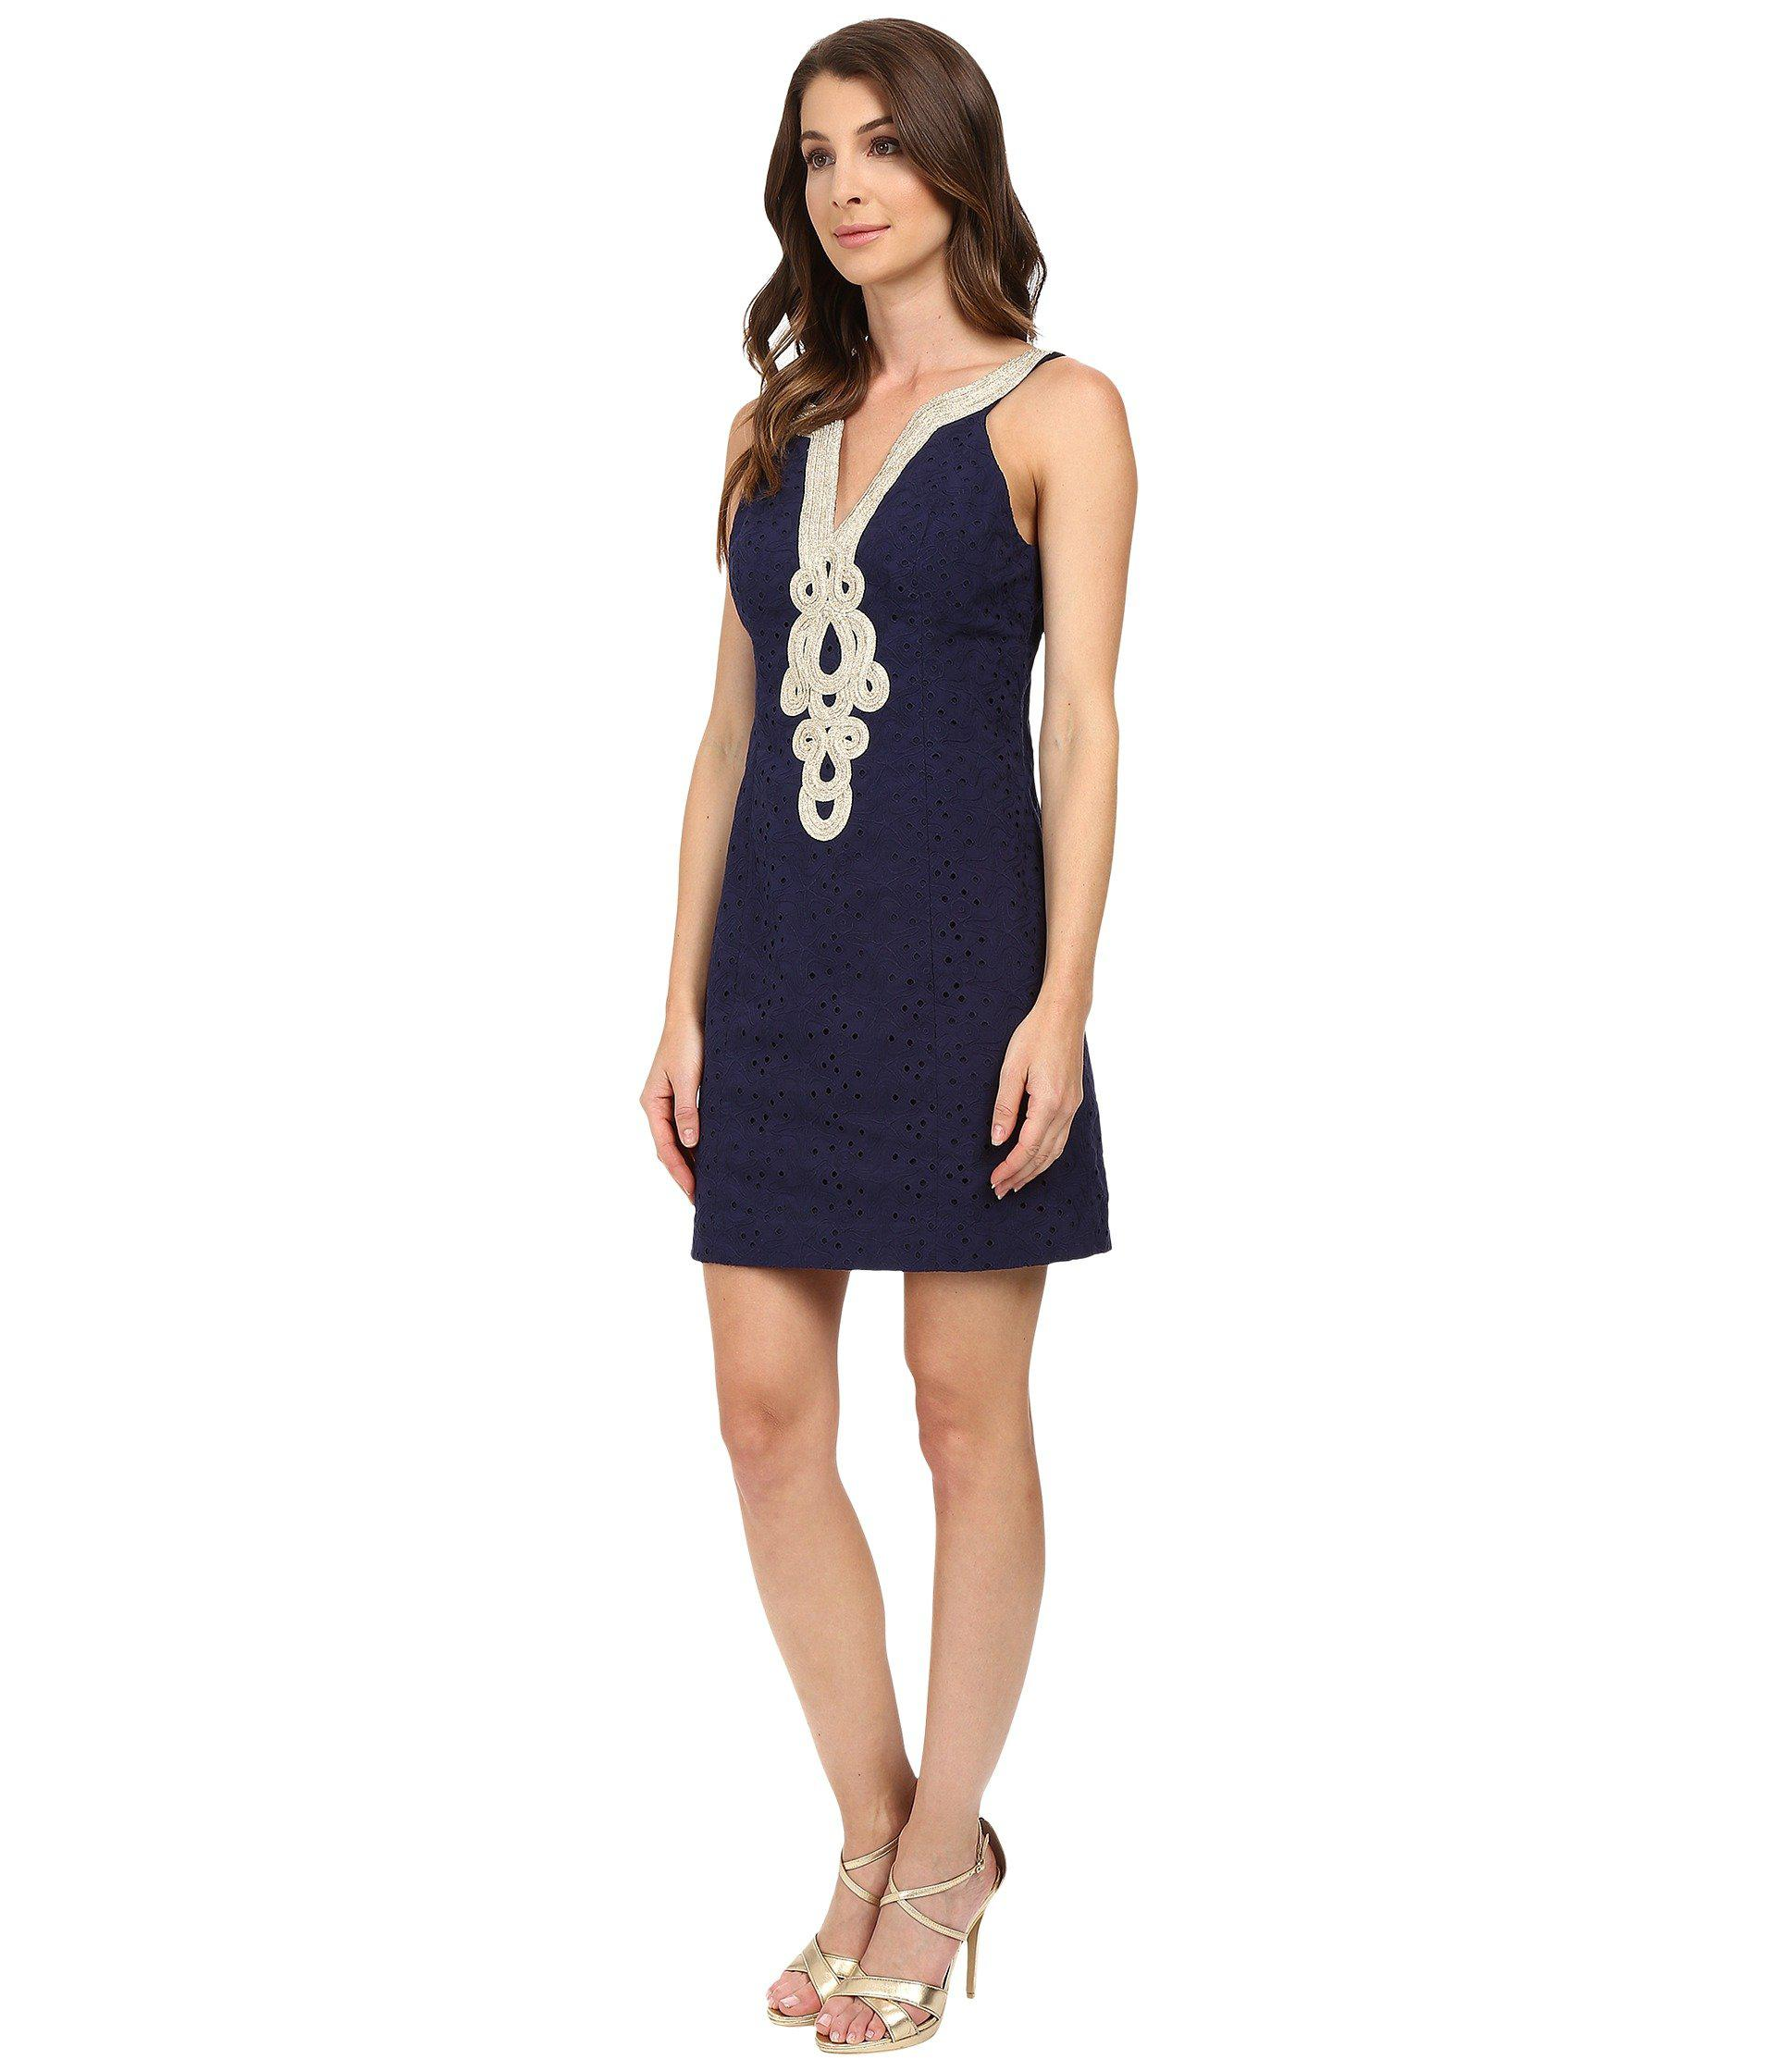 0d795d36df6aa6 Lyst - Lilly Pulitzer Emery Shift Dress in Blue